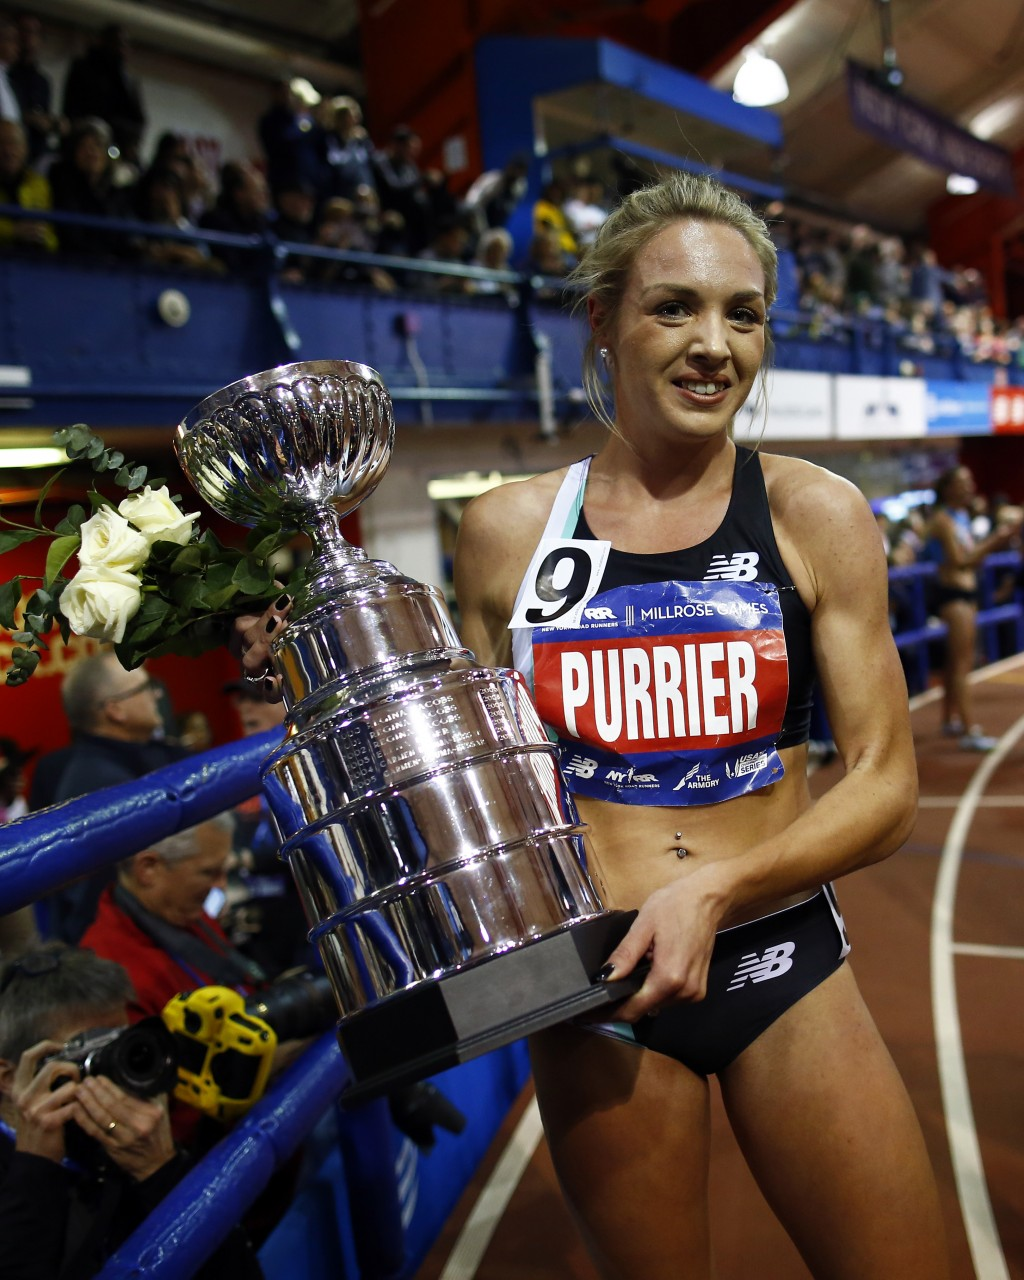 Elle Purrier holds a trophy after winning the NYRR Wanamaker Mile at the Millrose Games track and field meet Saturday, Feb. 8, 2020, in New York. (AP ...